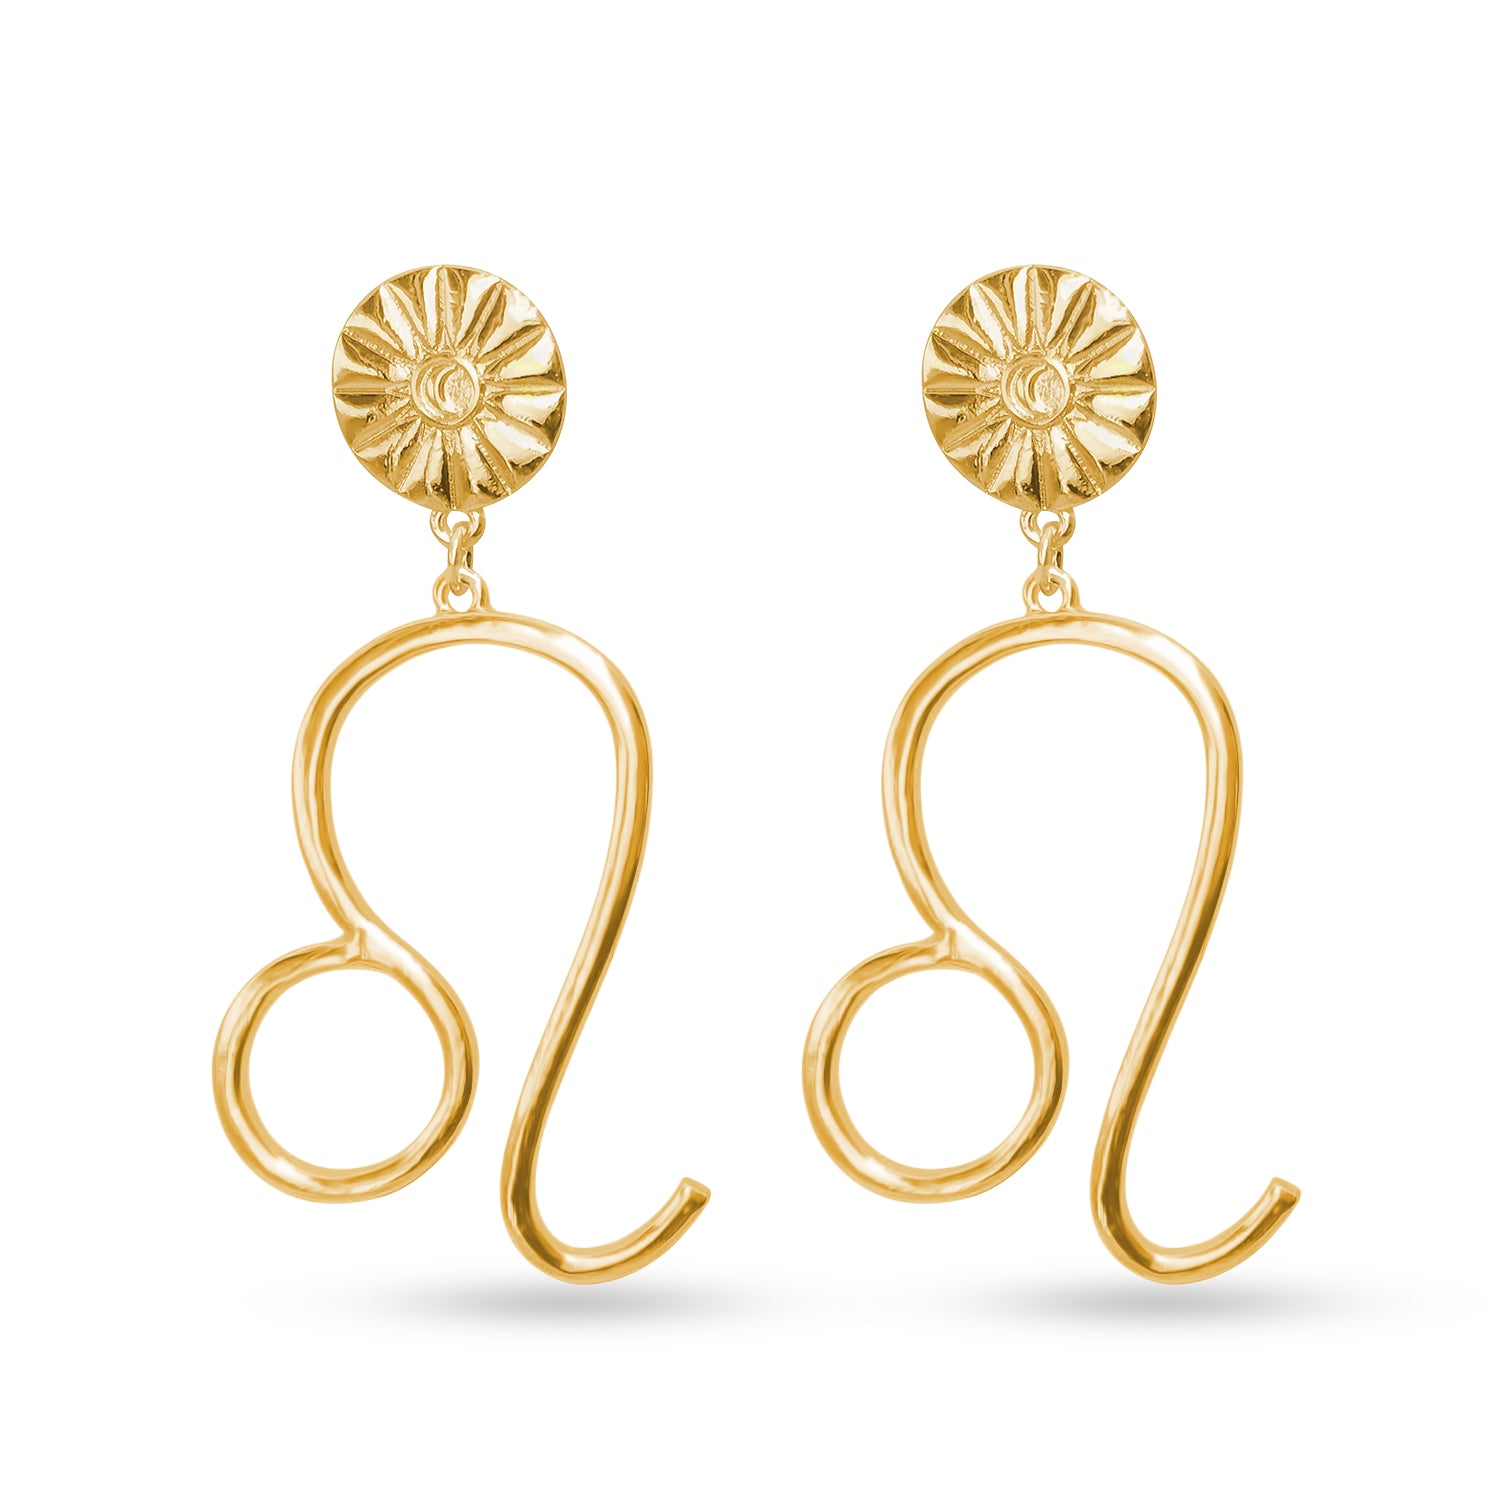 Leo XL earrings